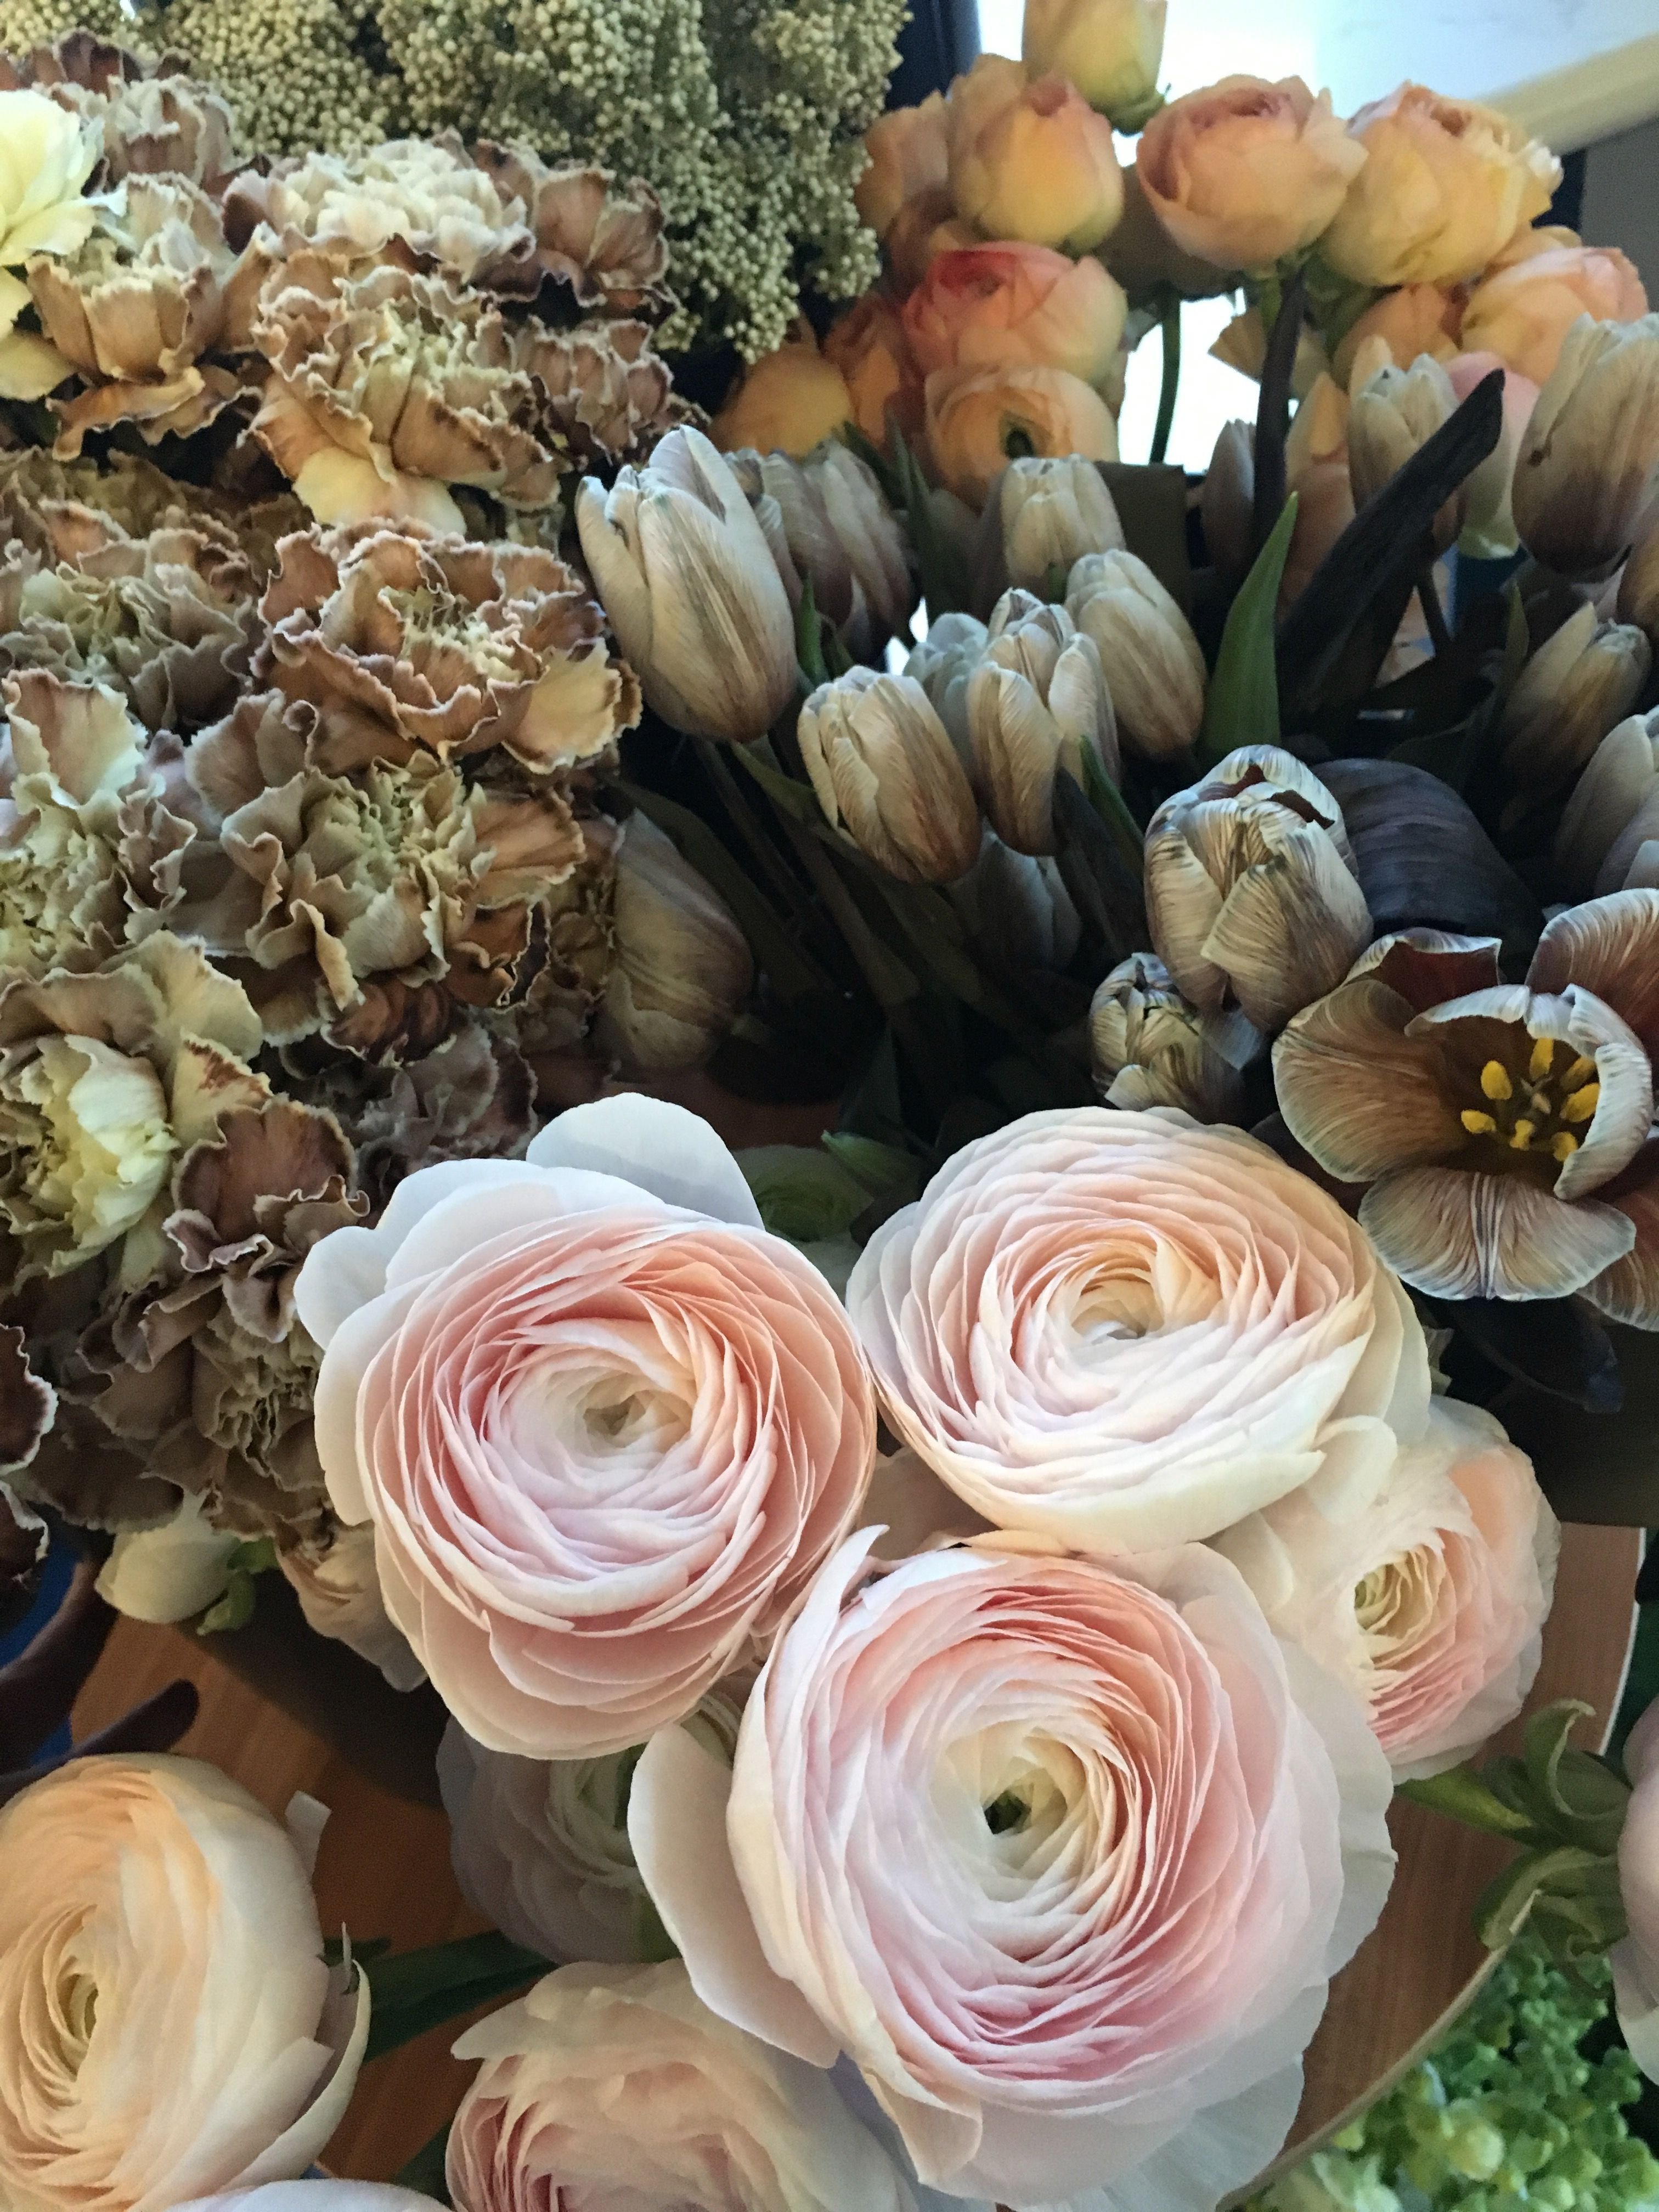 Pin by Rachelle Soucy on BOTANY Flowers online